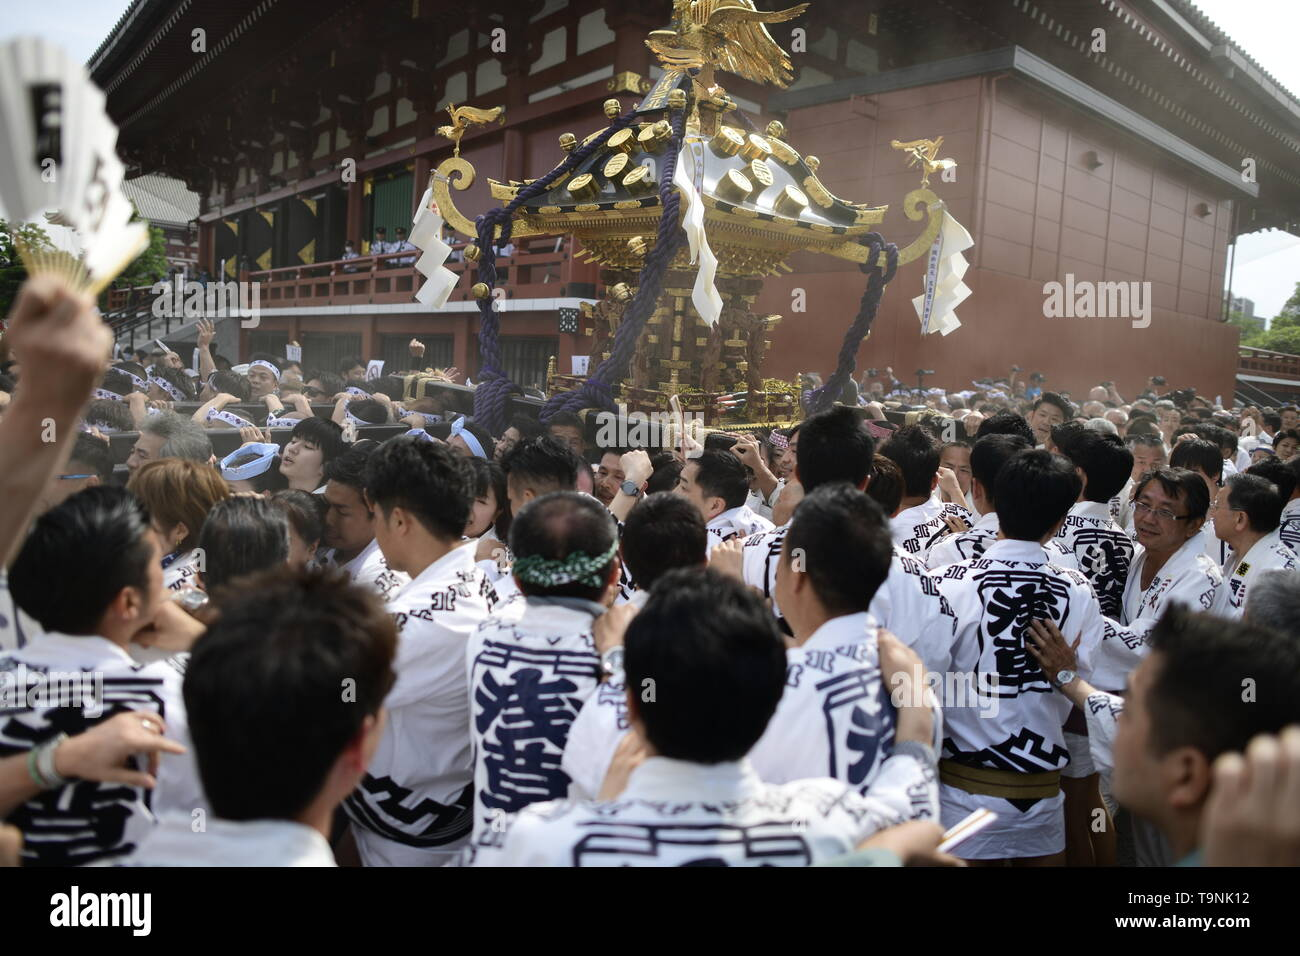 """TOKYO, JAPAN - MAY 18: Participants clad in traditional happi coats carry a portable shrine near Sensoji Temple during Tokyo's one of the largest three day festival called """"Sanja Matsuri"""" on May 18, 2019 in Tokyo, Japan. A boisterous traditional mikoshi (portable shrine) is carried in the streets of Asakusa to bring goodluck, blessings and prosperity to the area and its inhabitants. (Photo: Richard Atrero de Guzman/ AFLO) Stock Photo"""